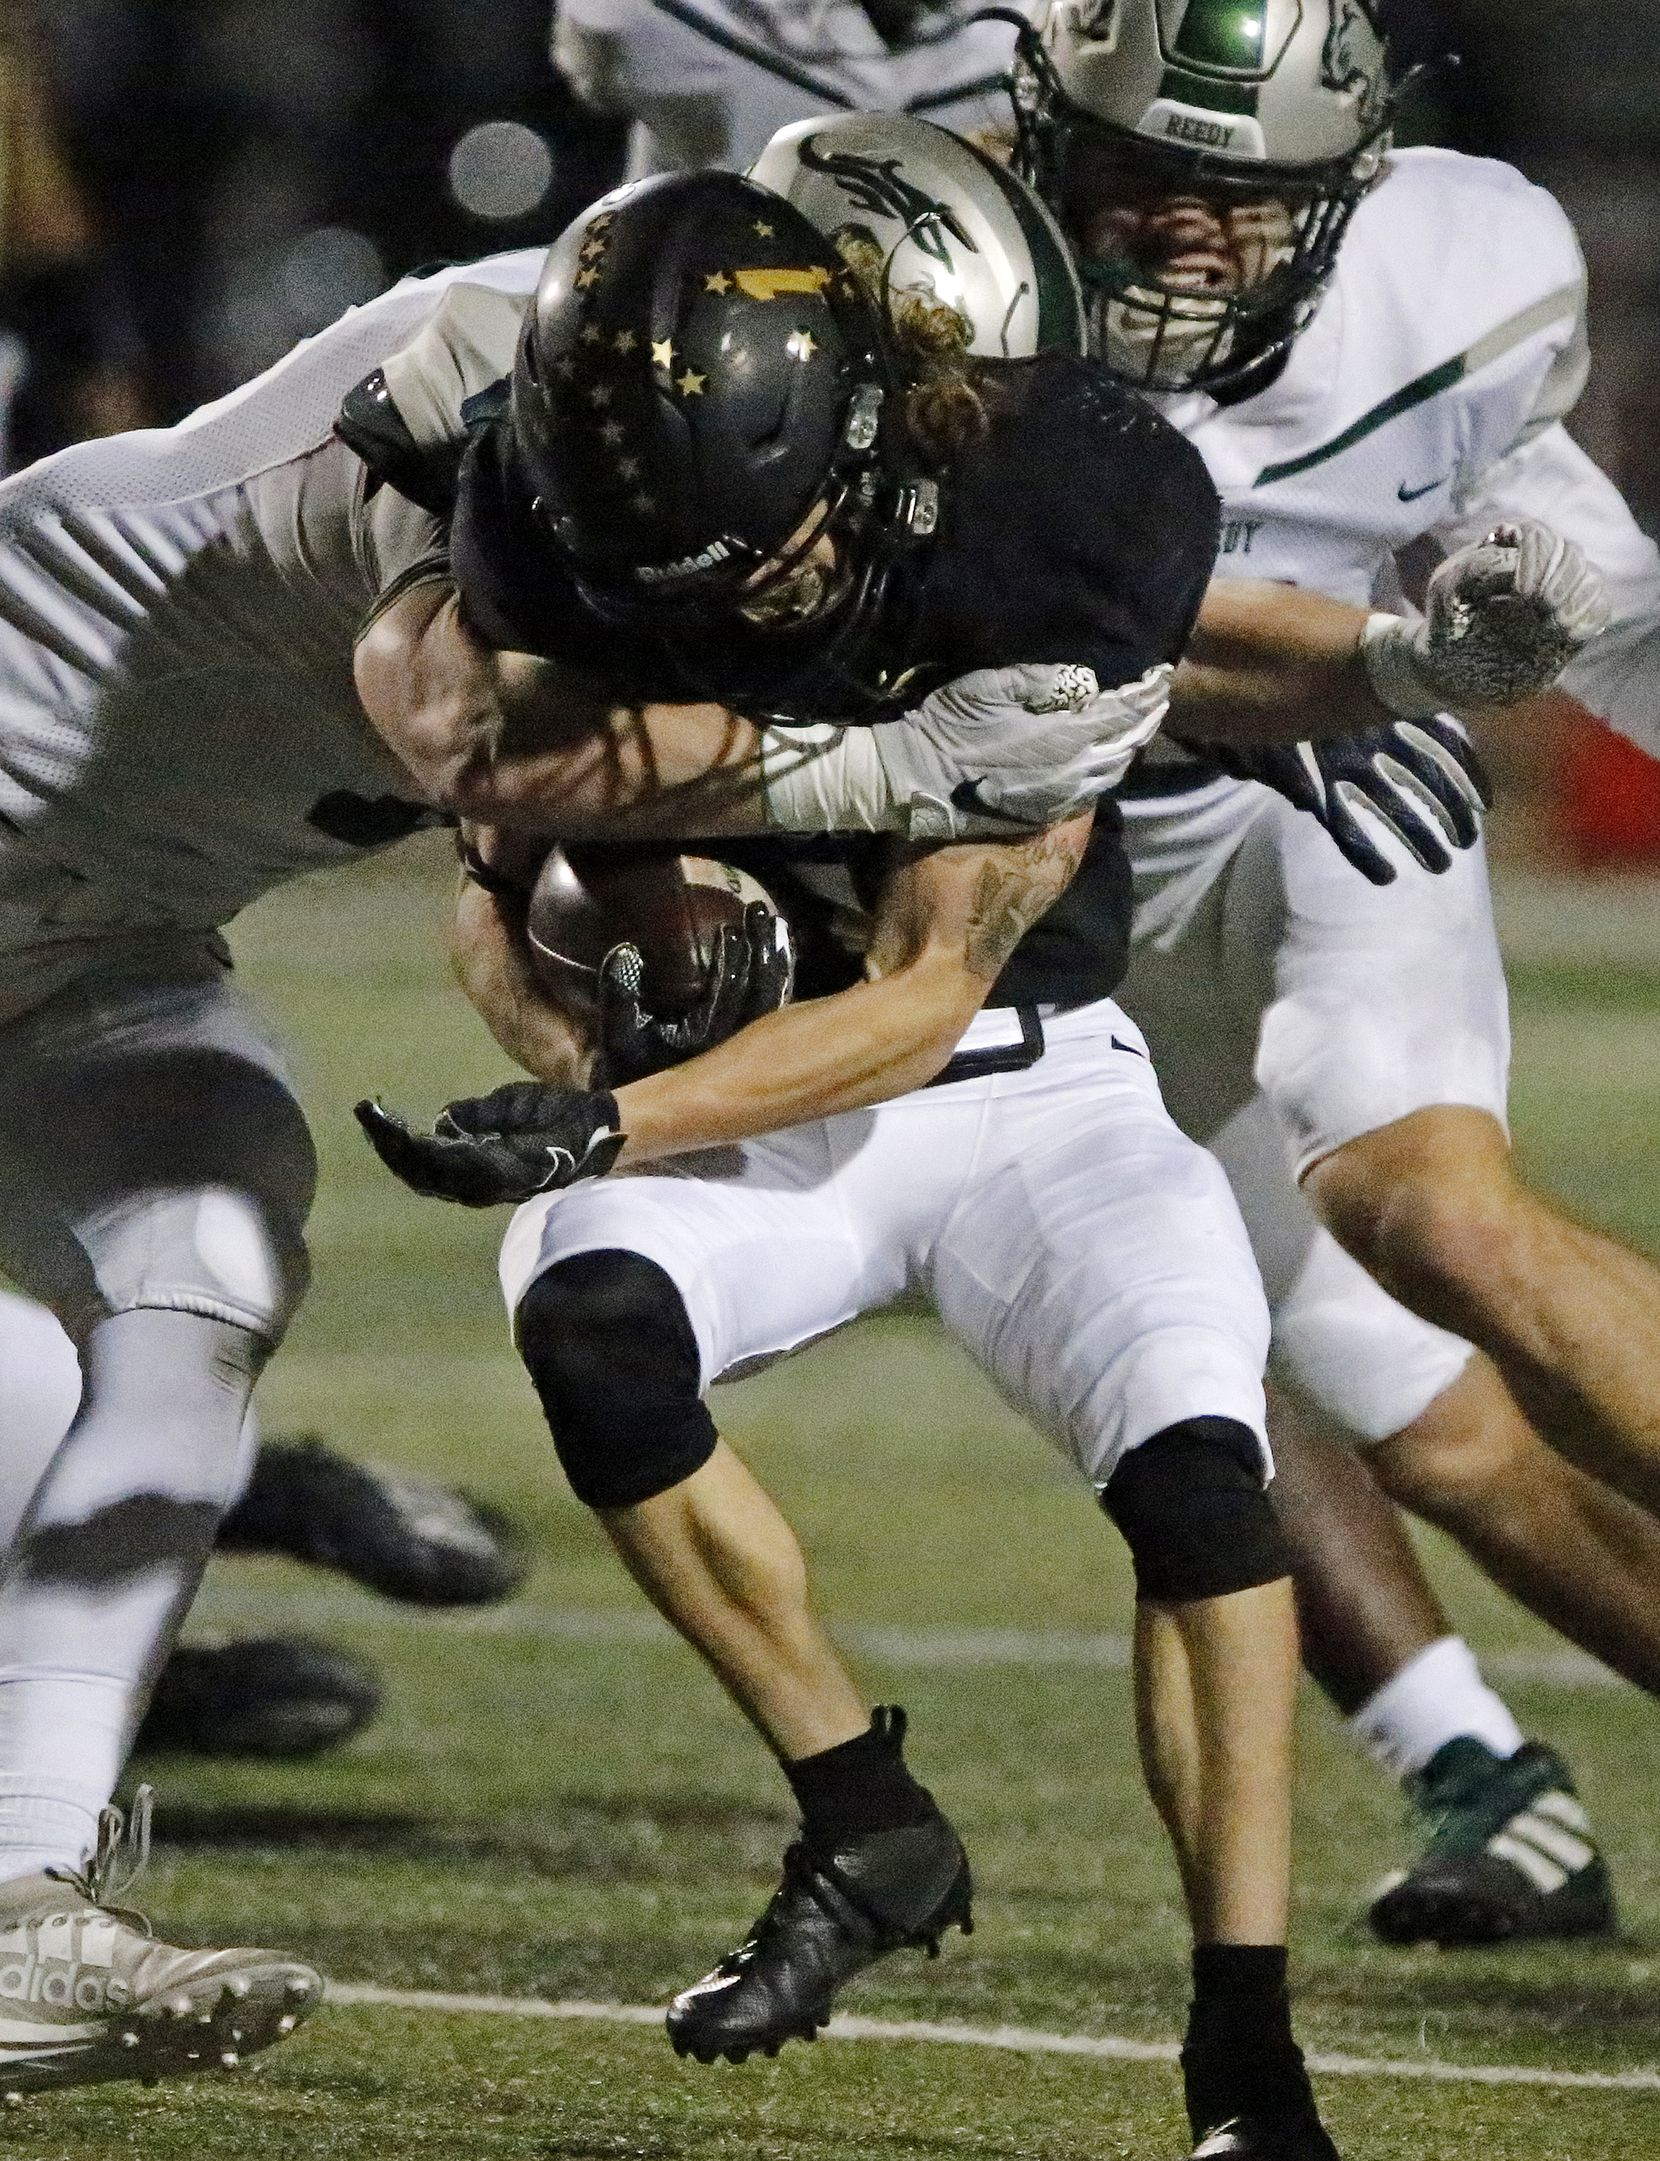 The Colony High School wide receiver Benji Nelson (1) is hit by Reedy High School defensive back Camden Hardy (9) and Nelson was able to shake the tackle during the first half as The Colony High School hosted Frisco Reedy High School at Tommy Briggs Stadium on Friday night, December 4, 2020.  (Stewart F. House/Special Contributor)